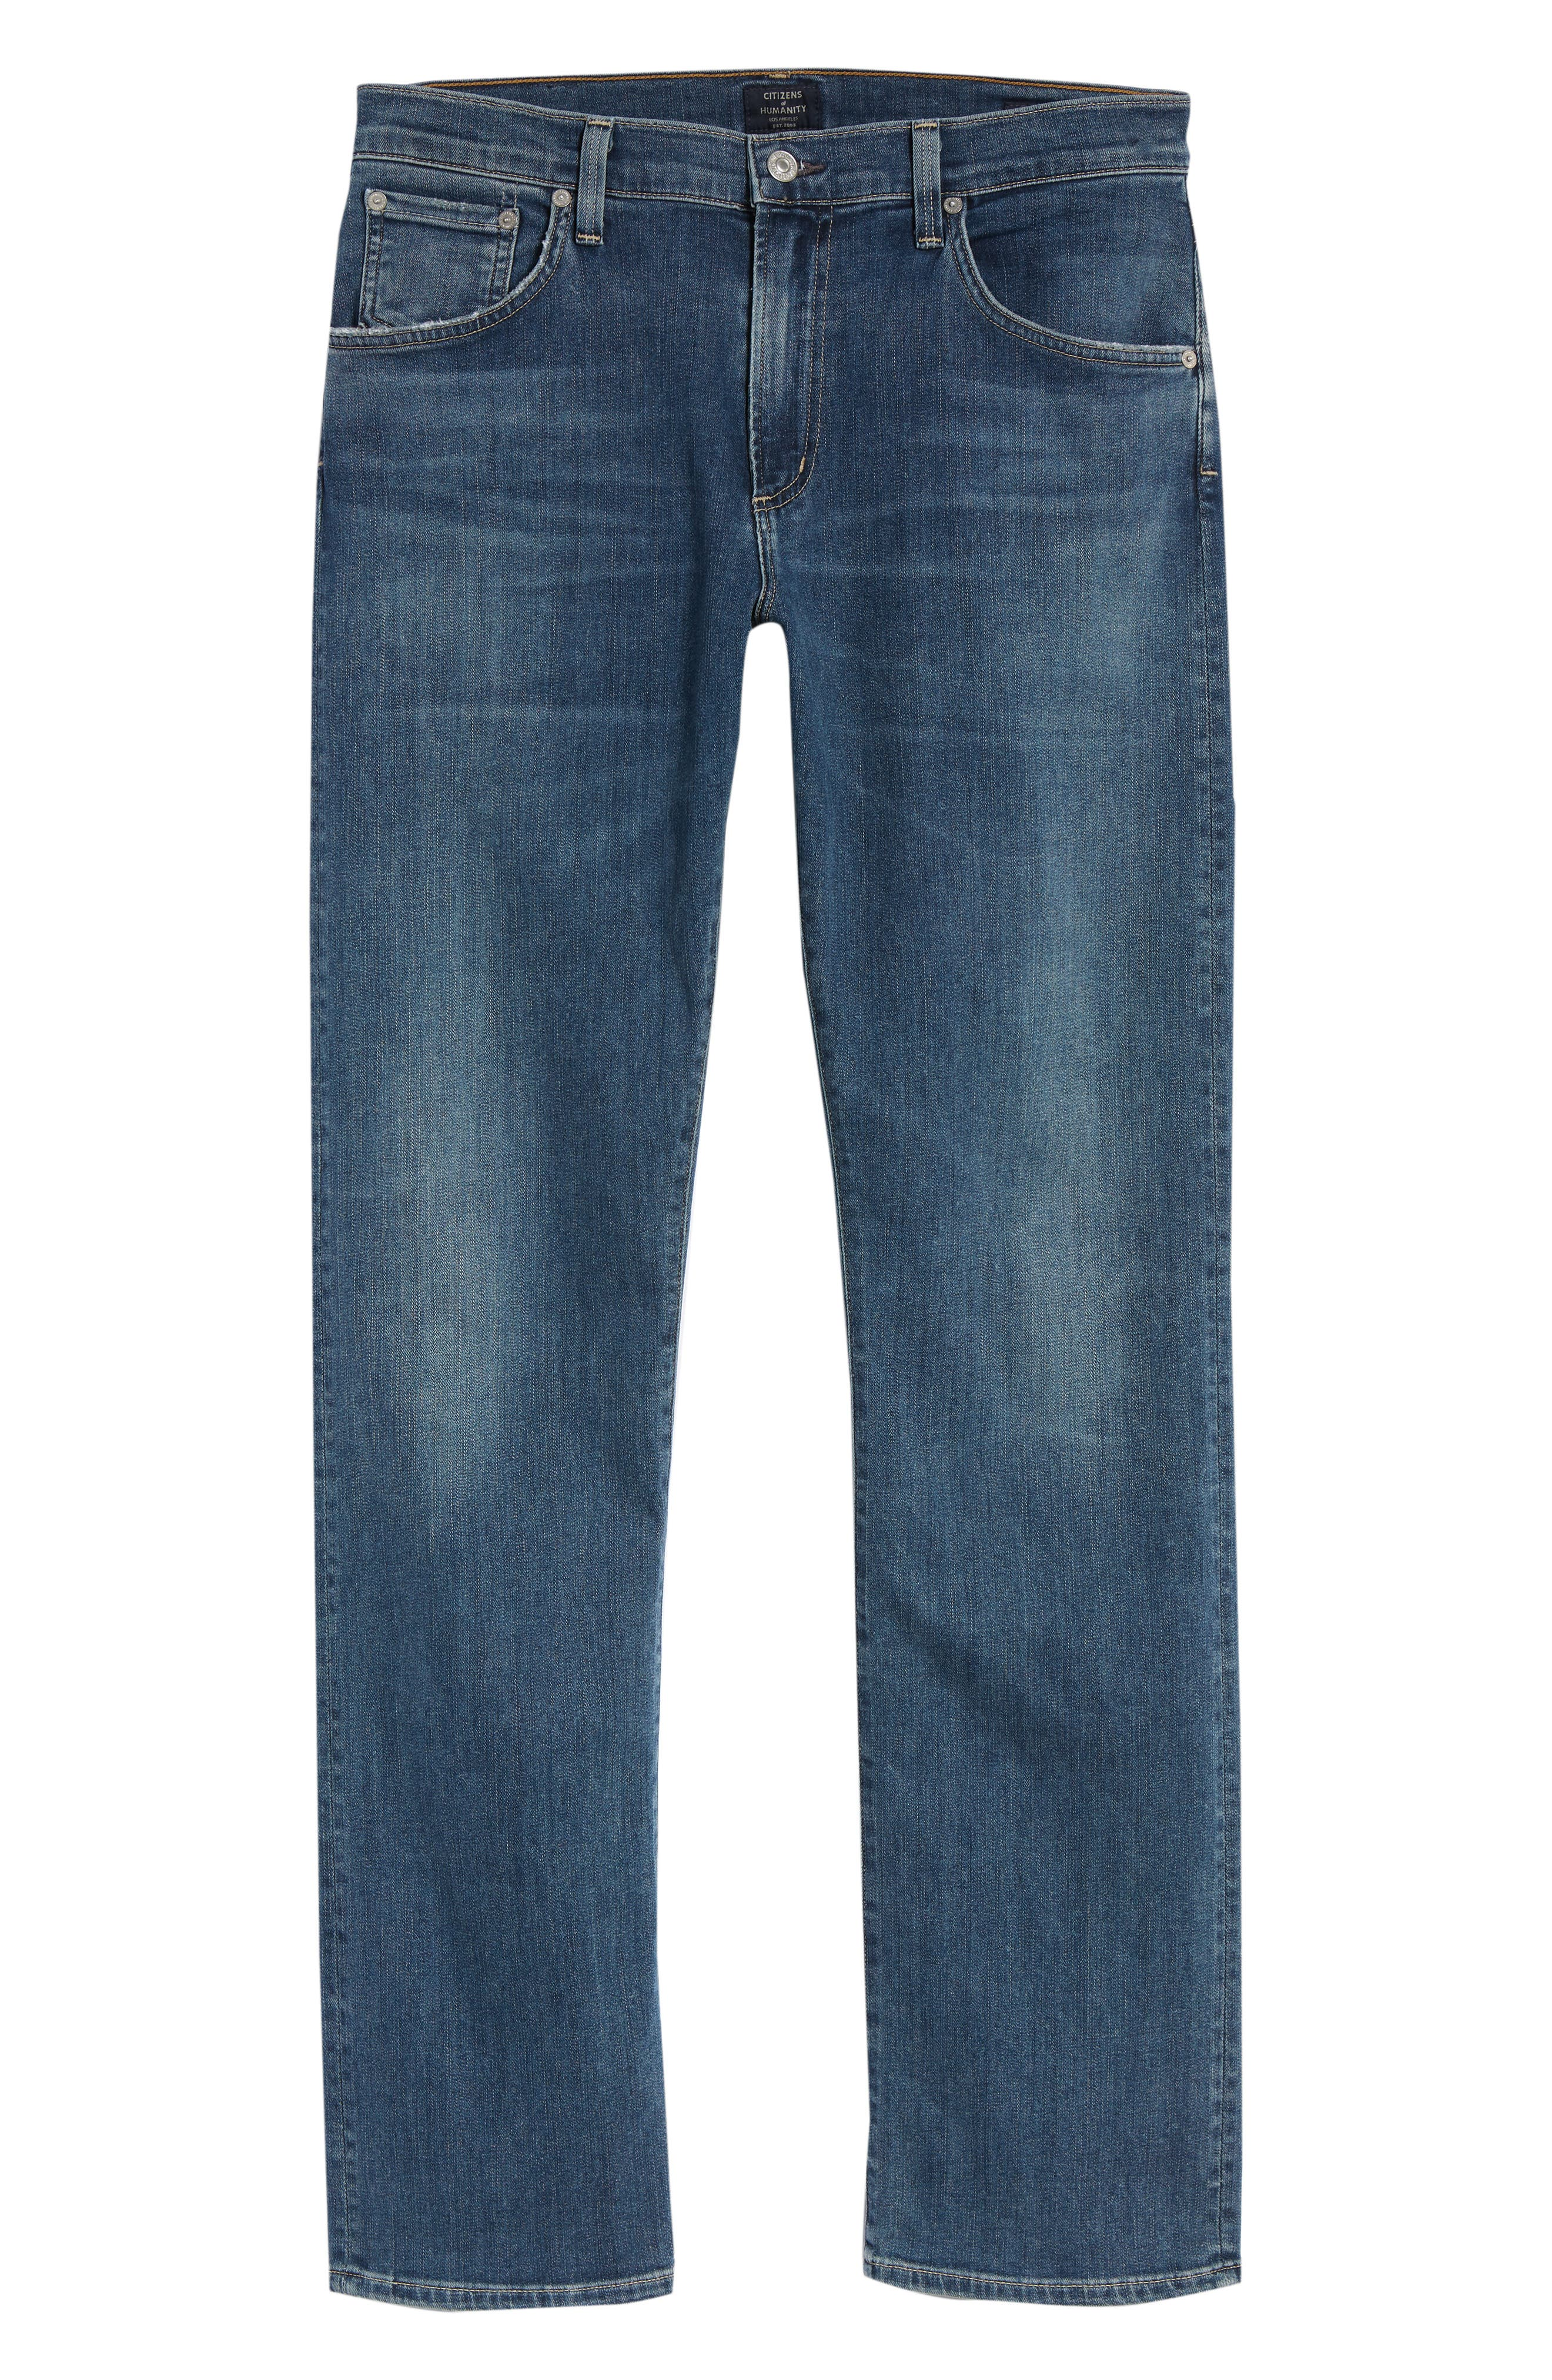 Gage Slim Straight Fit Jeans,                             Alternate thumbnail 6, color,                             427